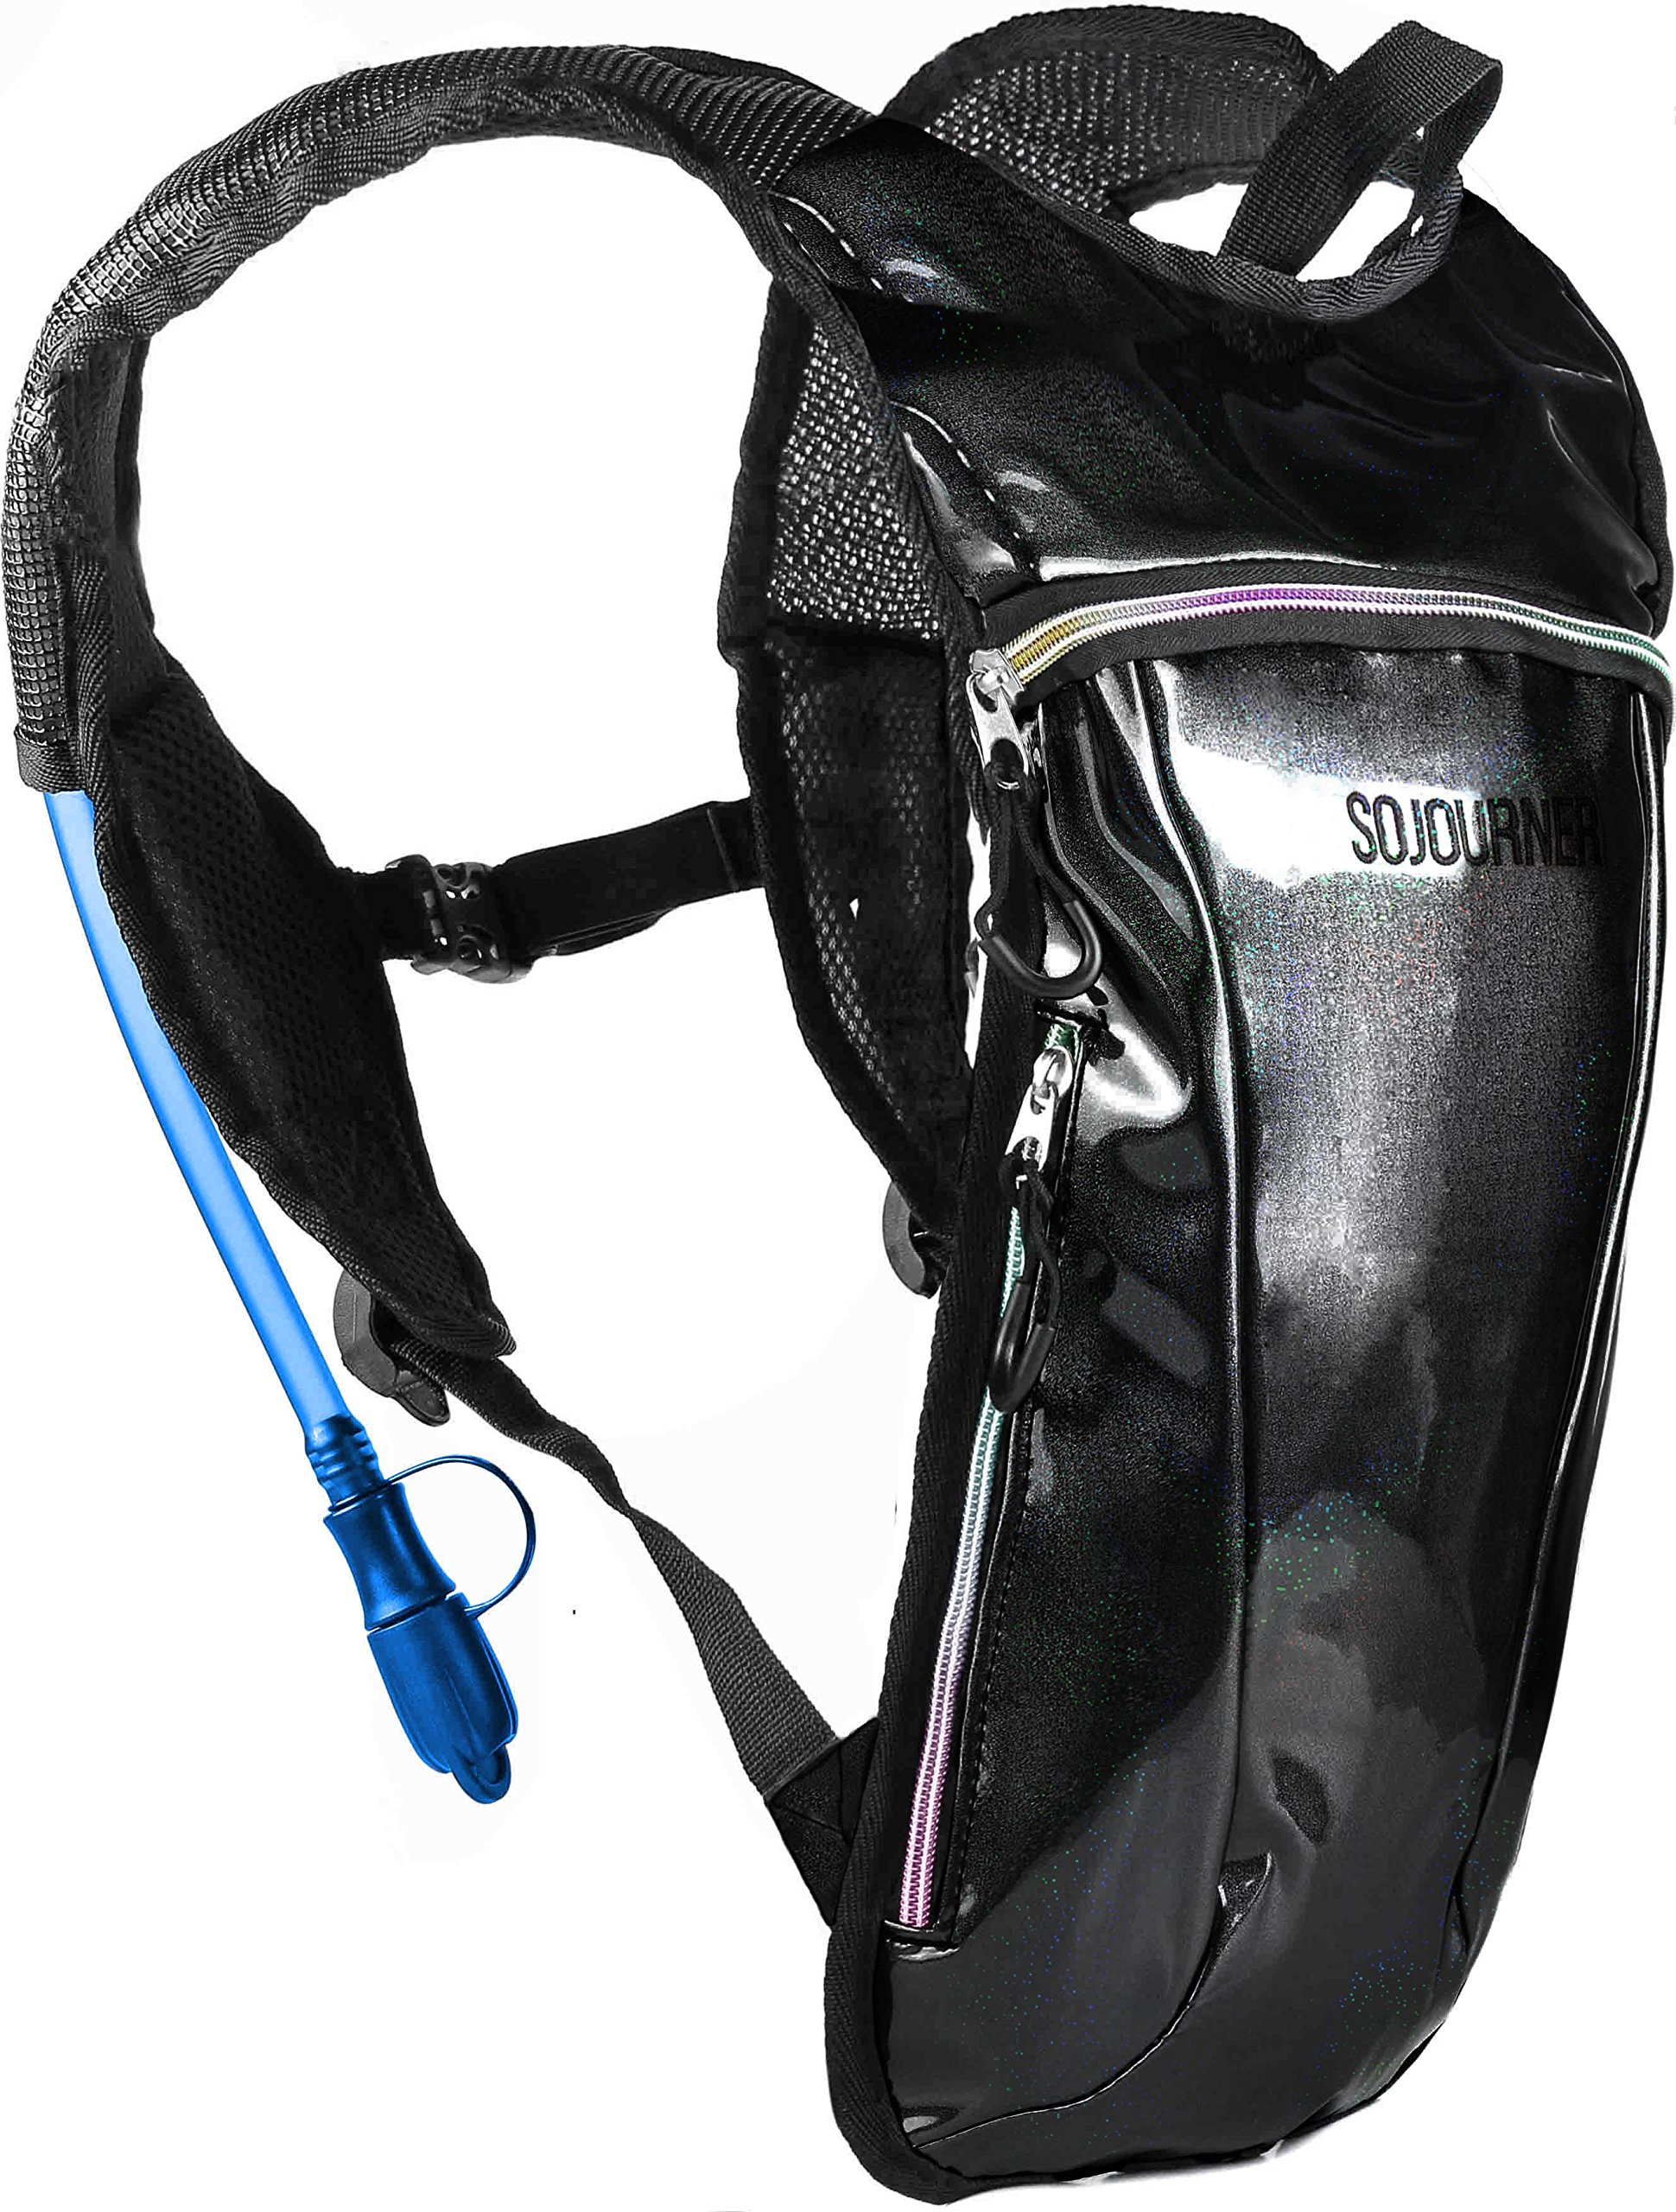 Sojourner Rave Hydration Pack Backpack - 2L Water Bladder Included for Festivals, Raves, Hiking, Biking, Climbing, Running and More (Small) (Glitter - Black)